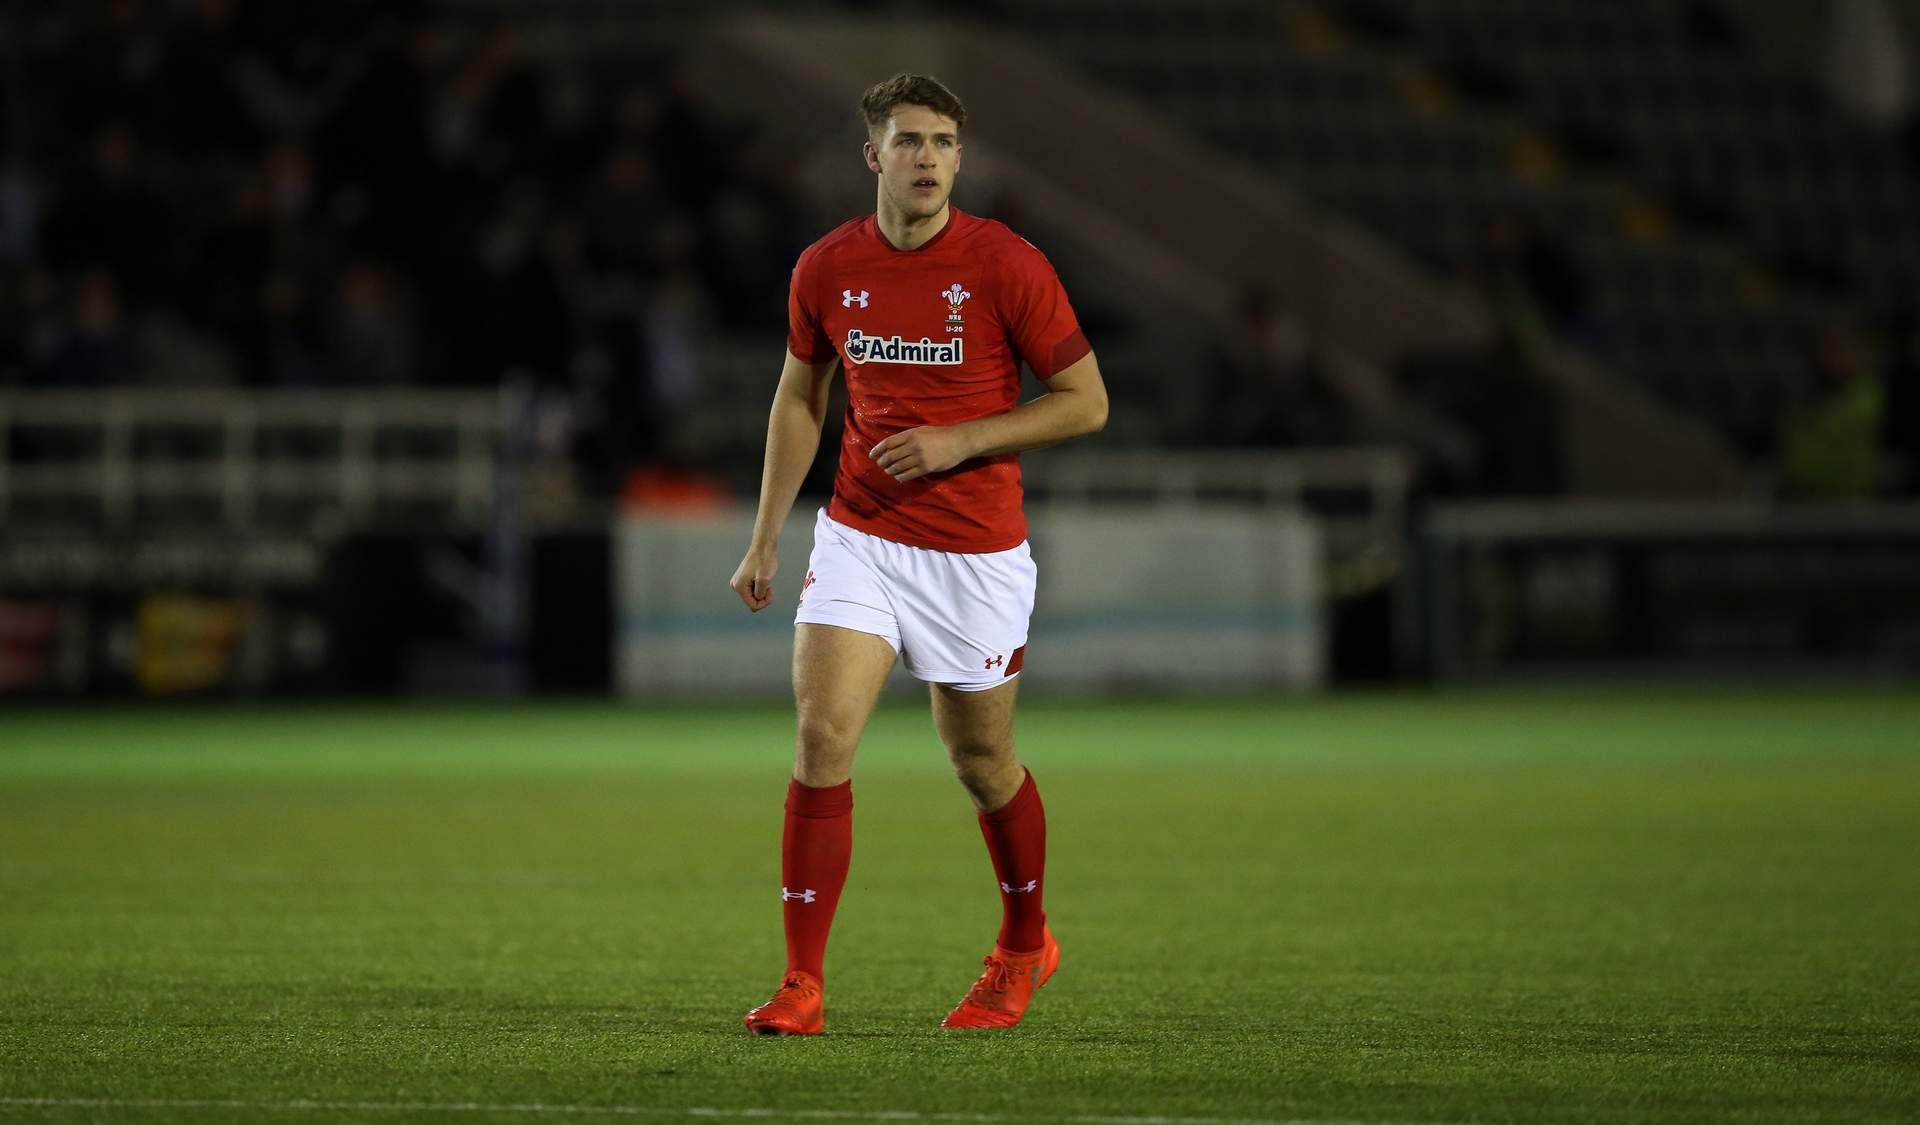 New-look Wales U20 heads to Dublin